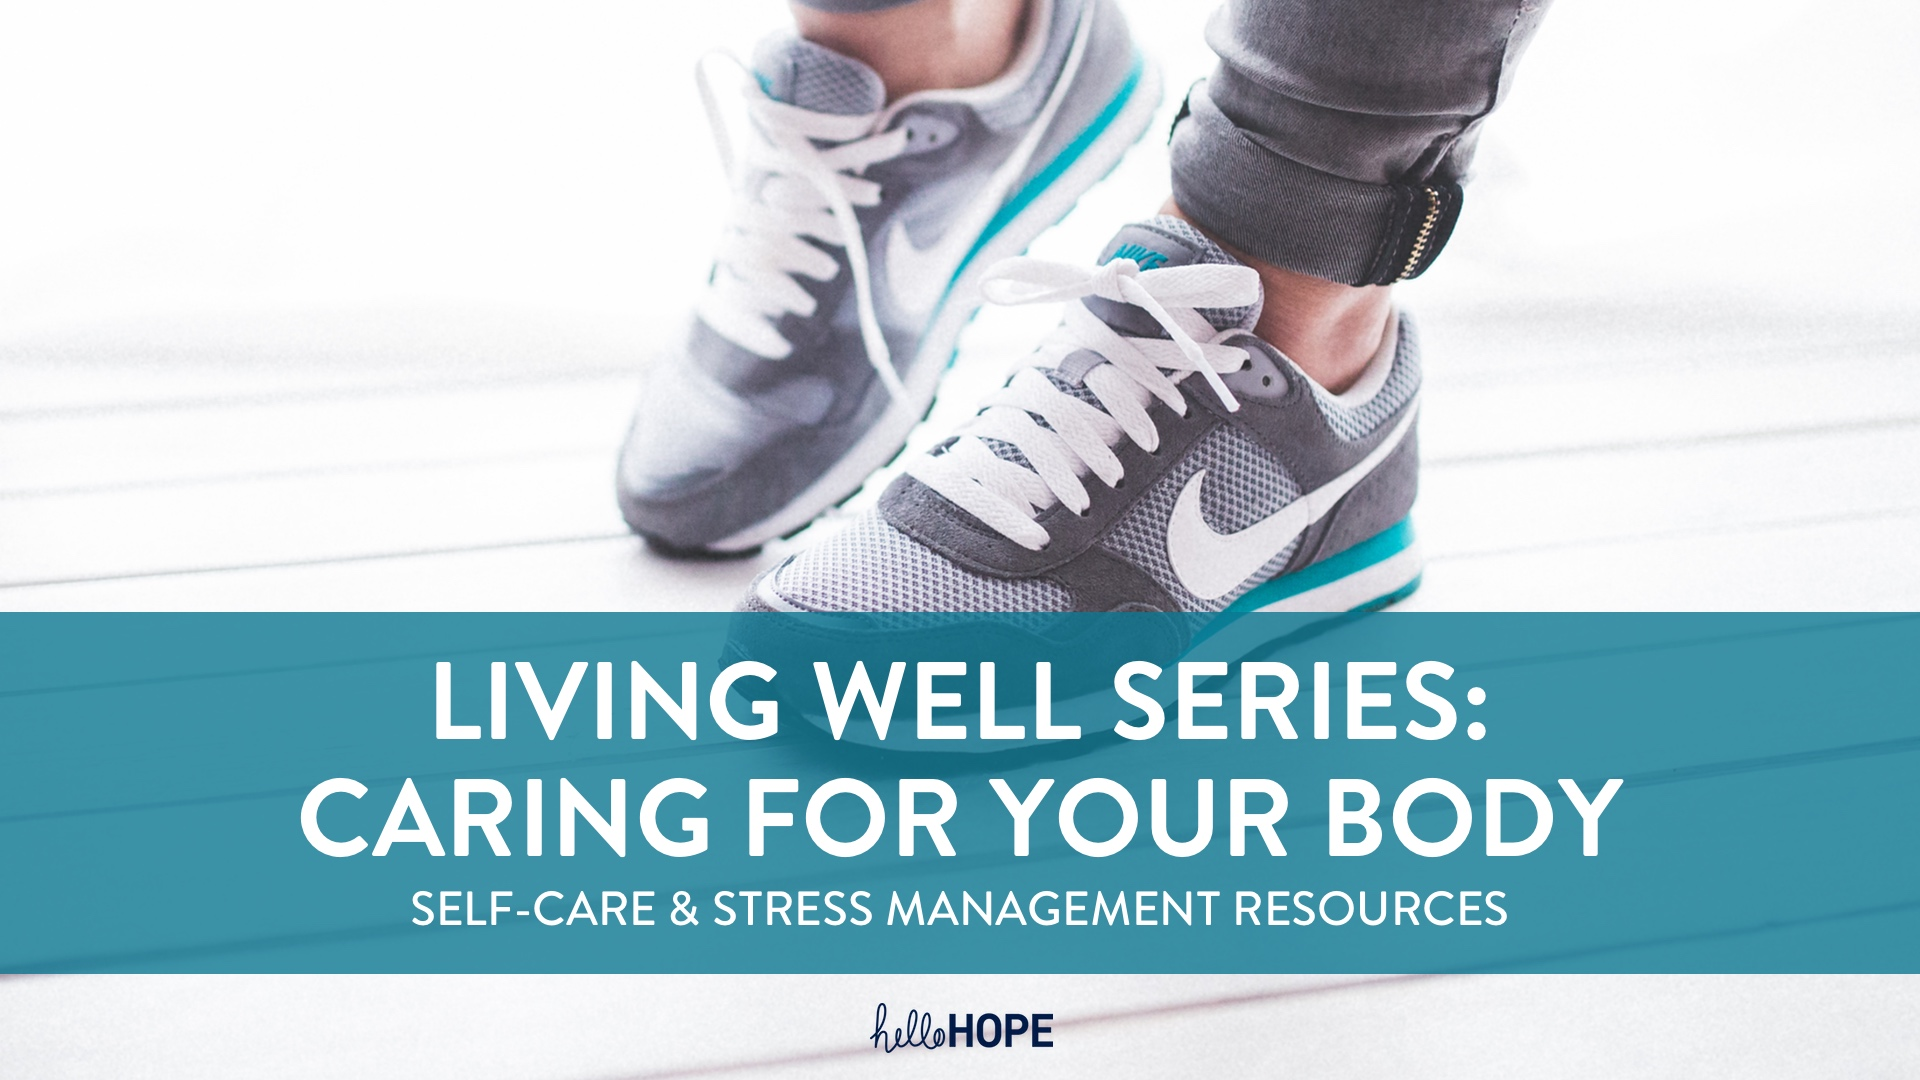 Tennis Shoes and Words | Living Well | Caring for your Body | helloHOPE Resource